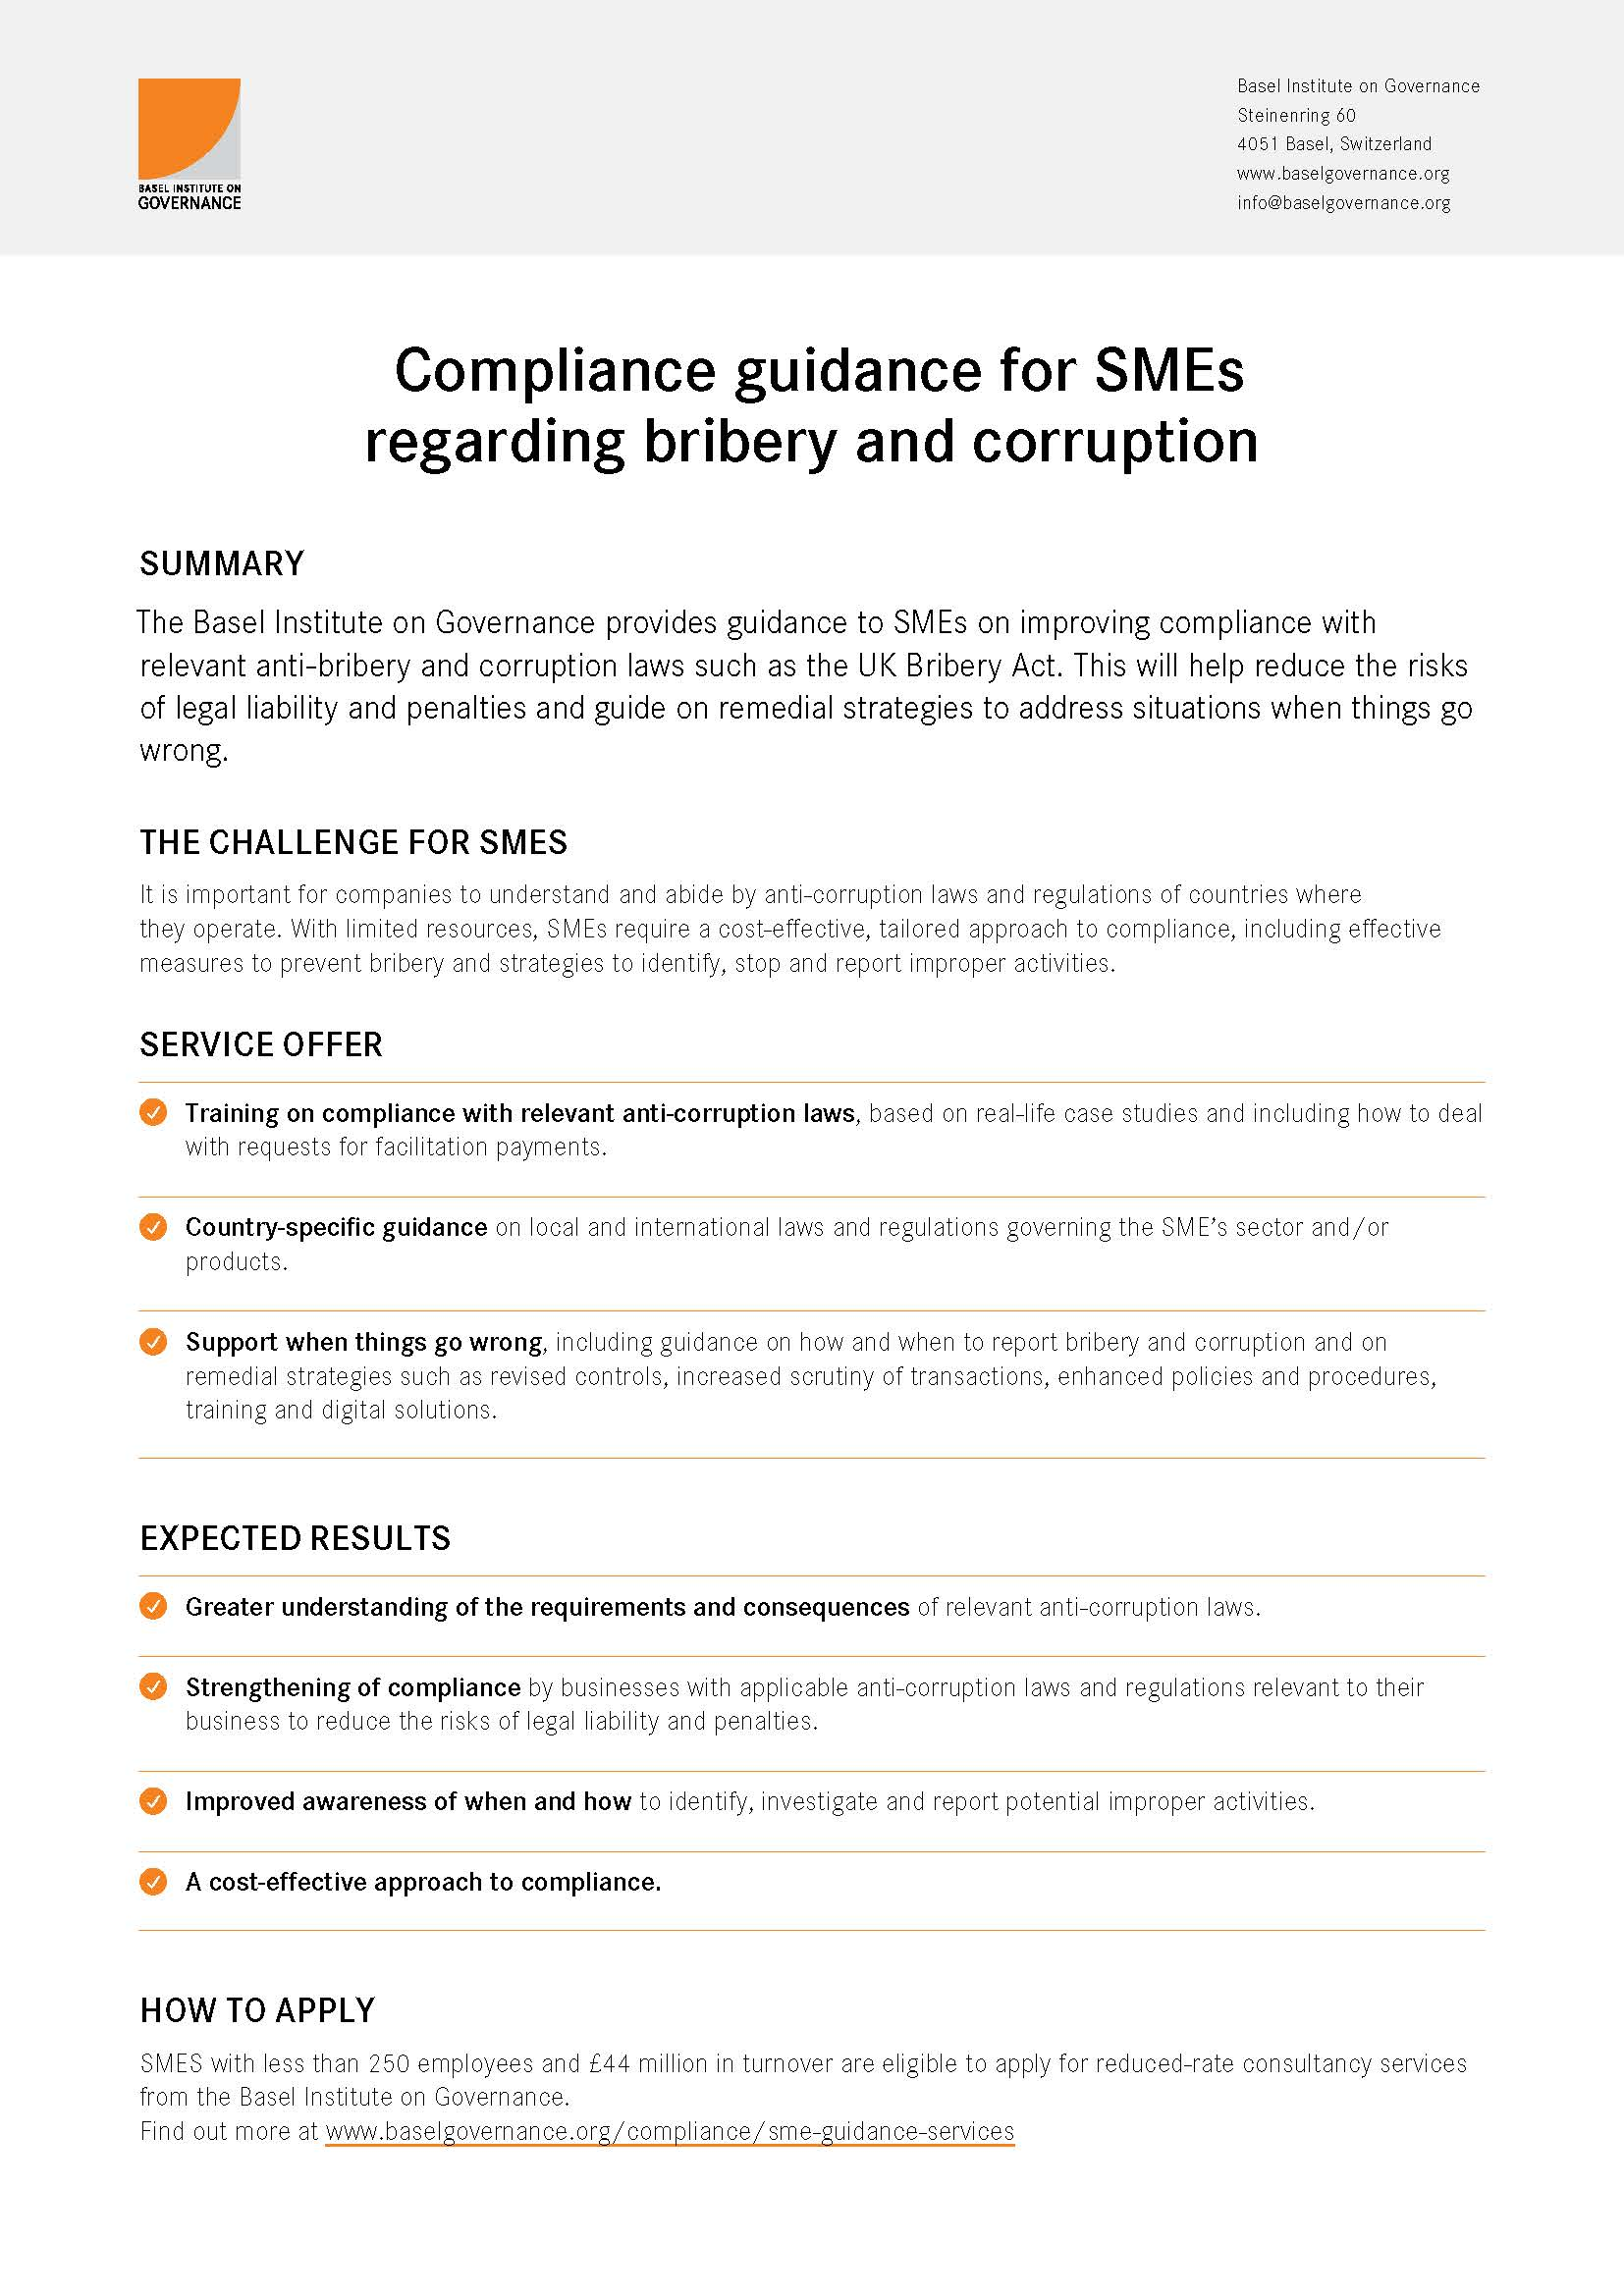 Compliance guidance for SMEs flyer